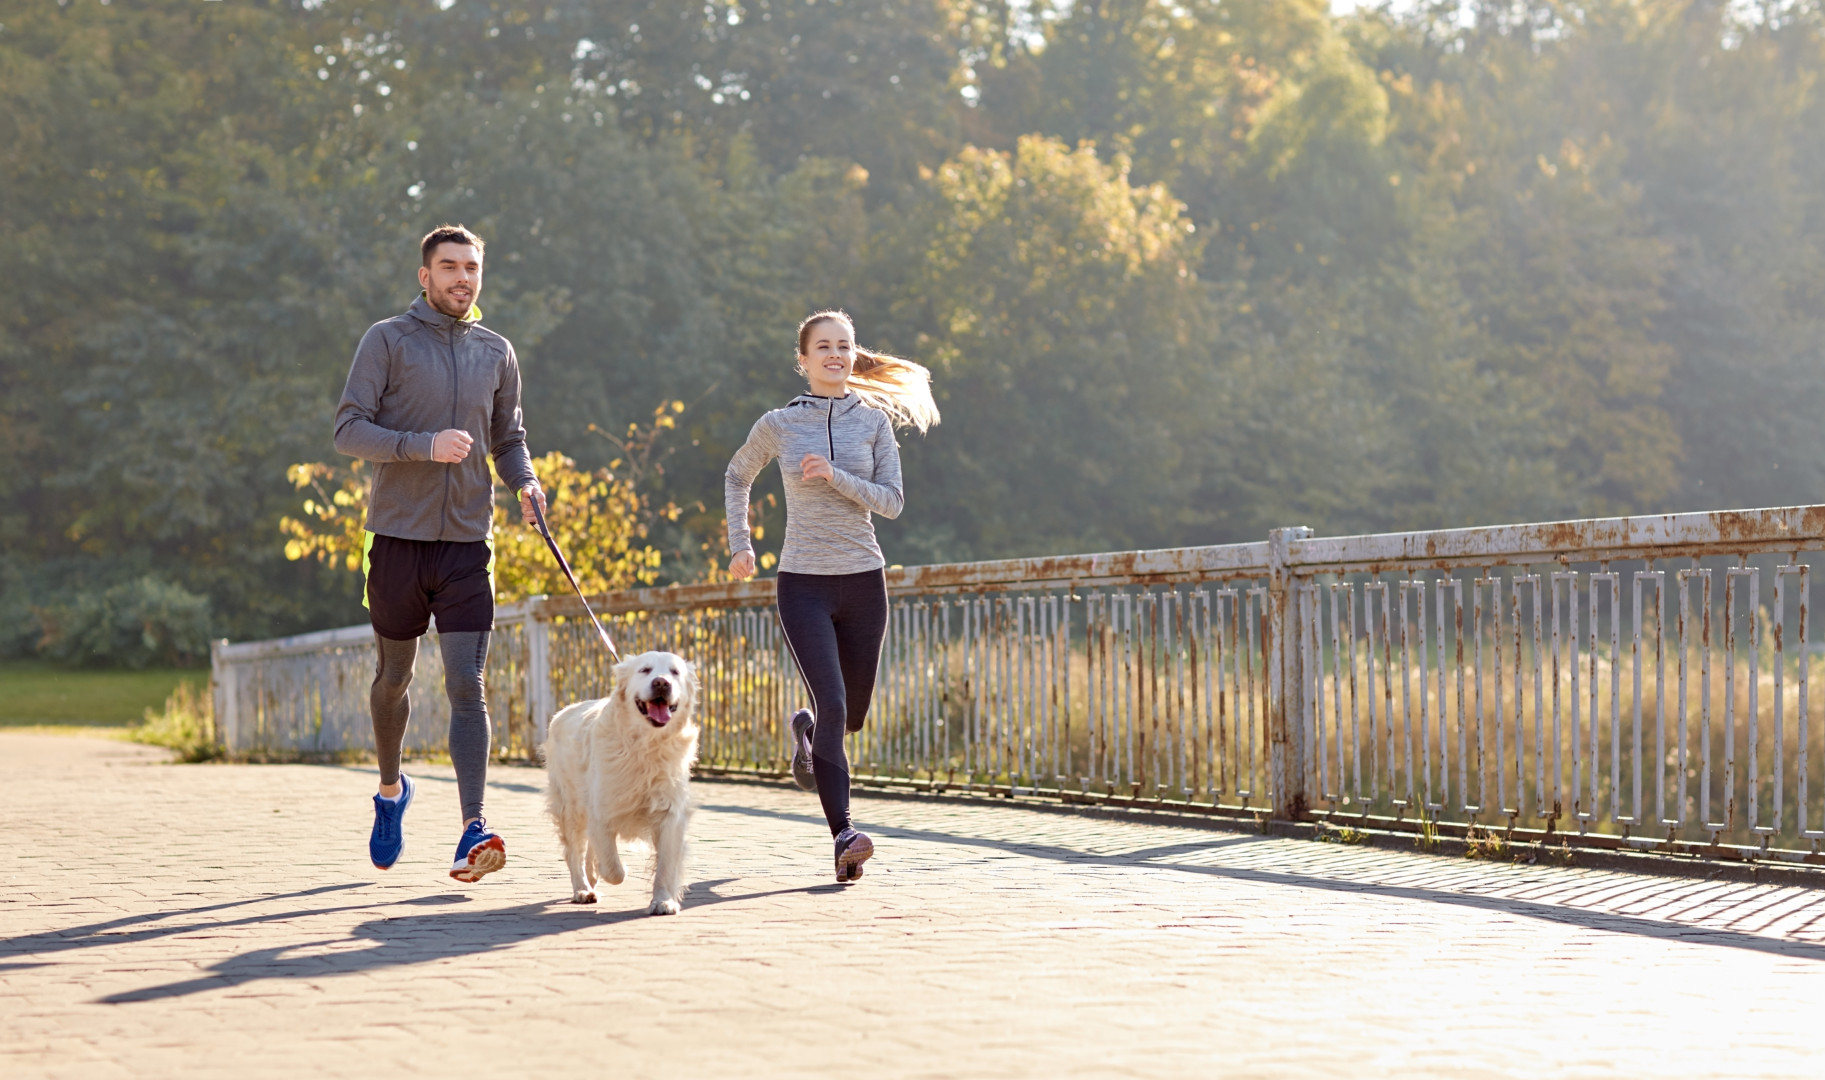 Sports Physical Therapy in Oklahoma City can help you get back to exercising you enjoy